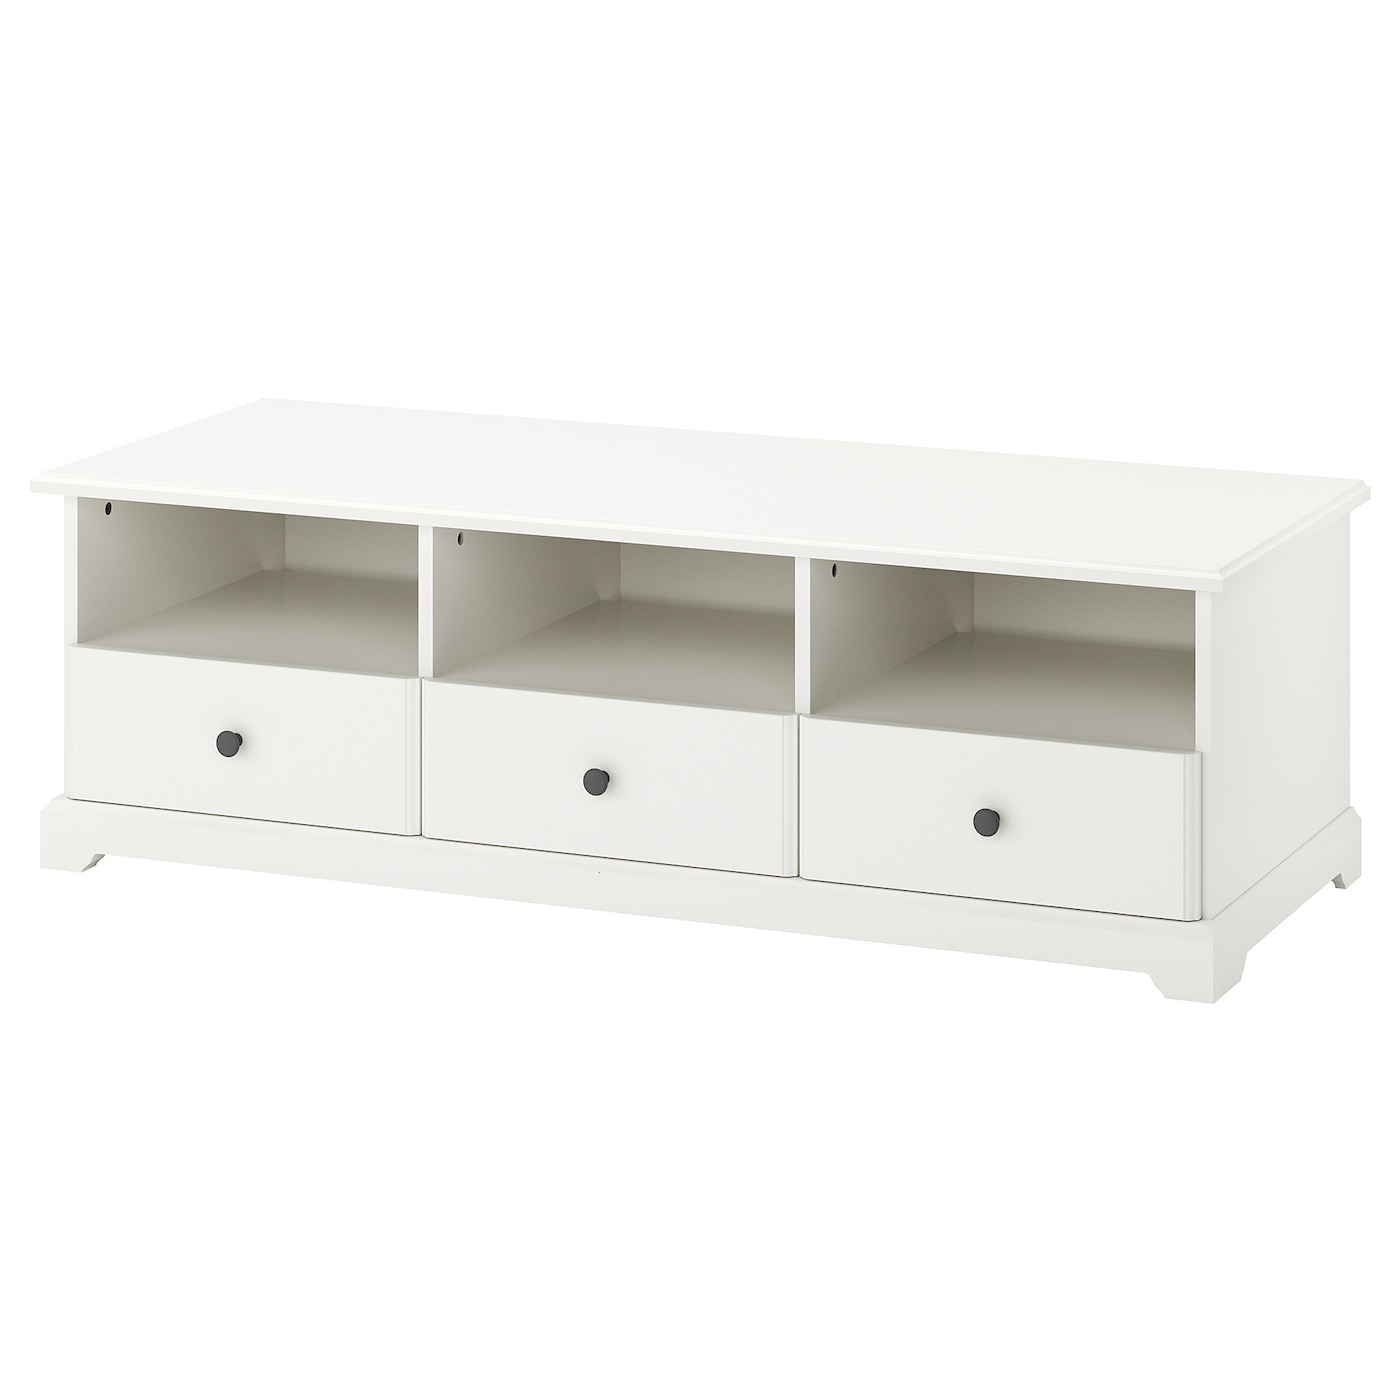 liatorp tv bench white 145 x 49 x 45 cm - ikea